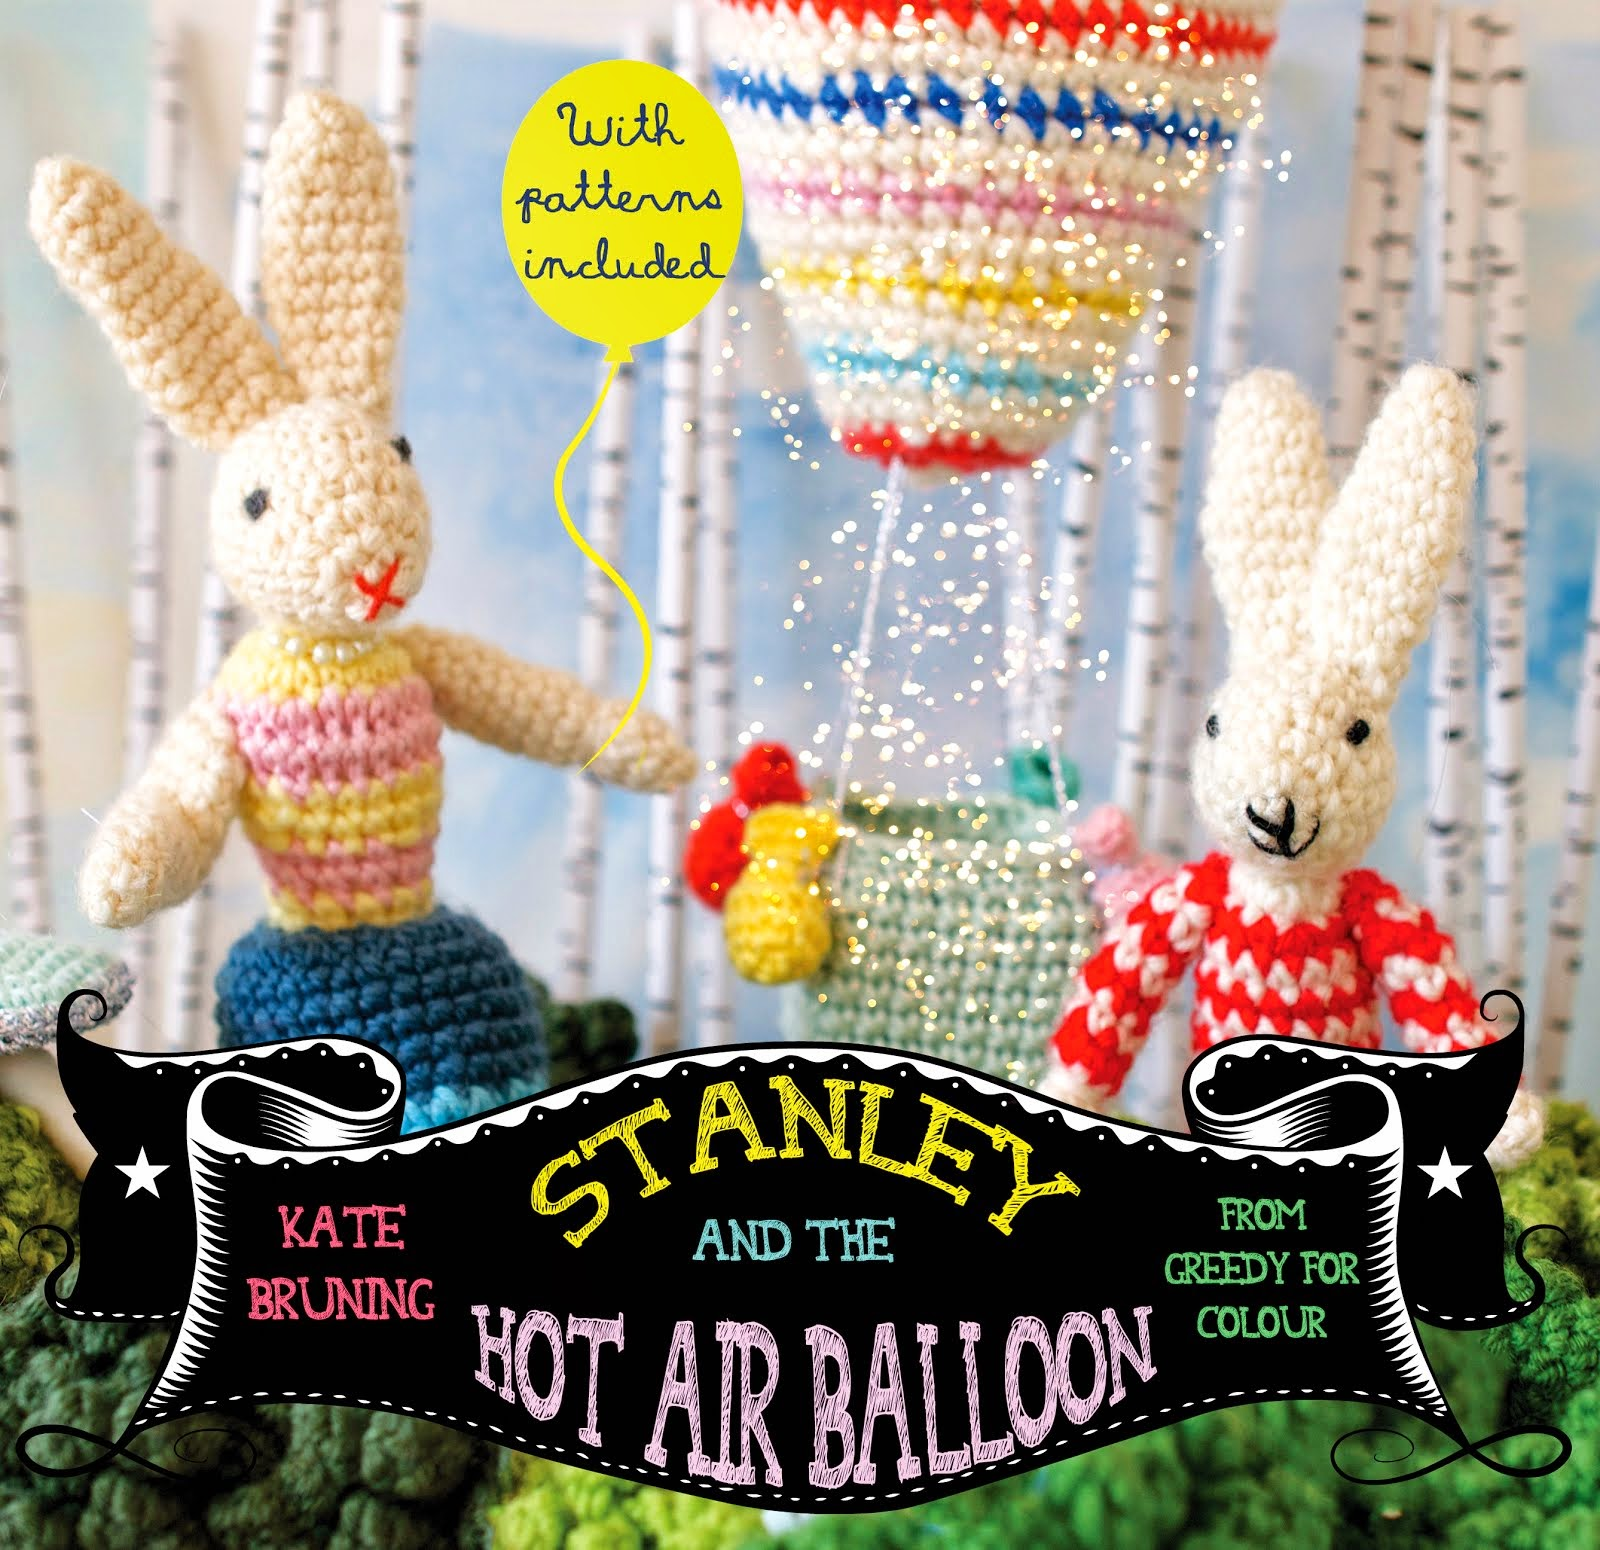 Stanley and the Hot Air Balloon